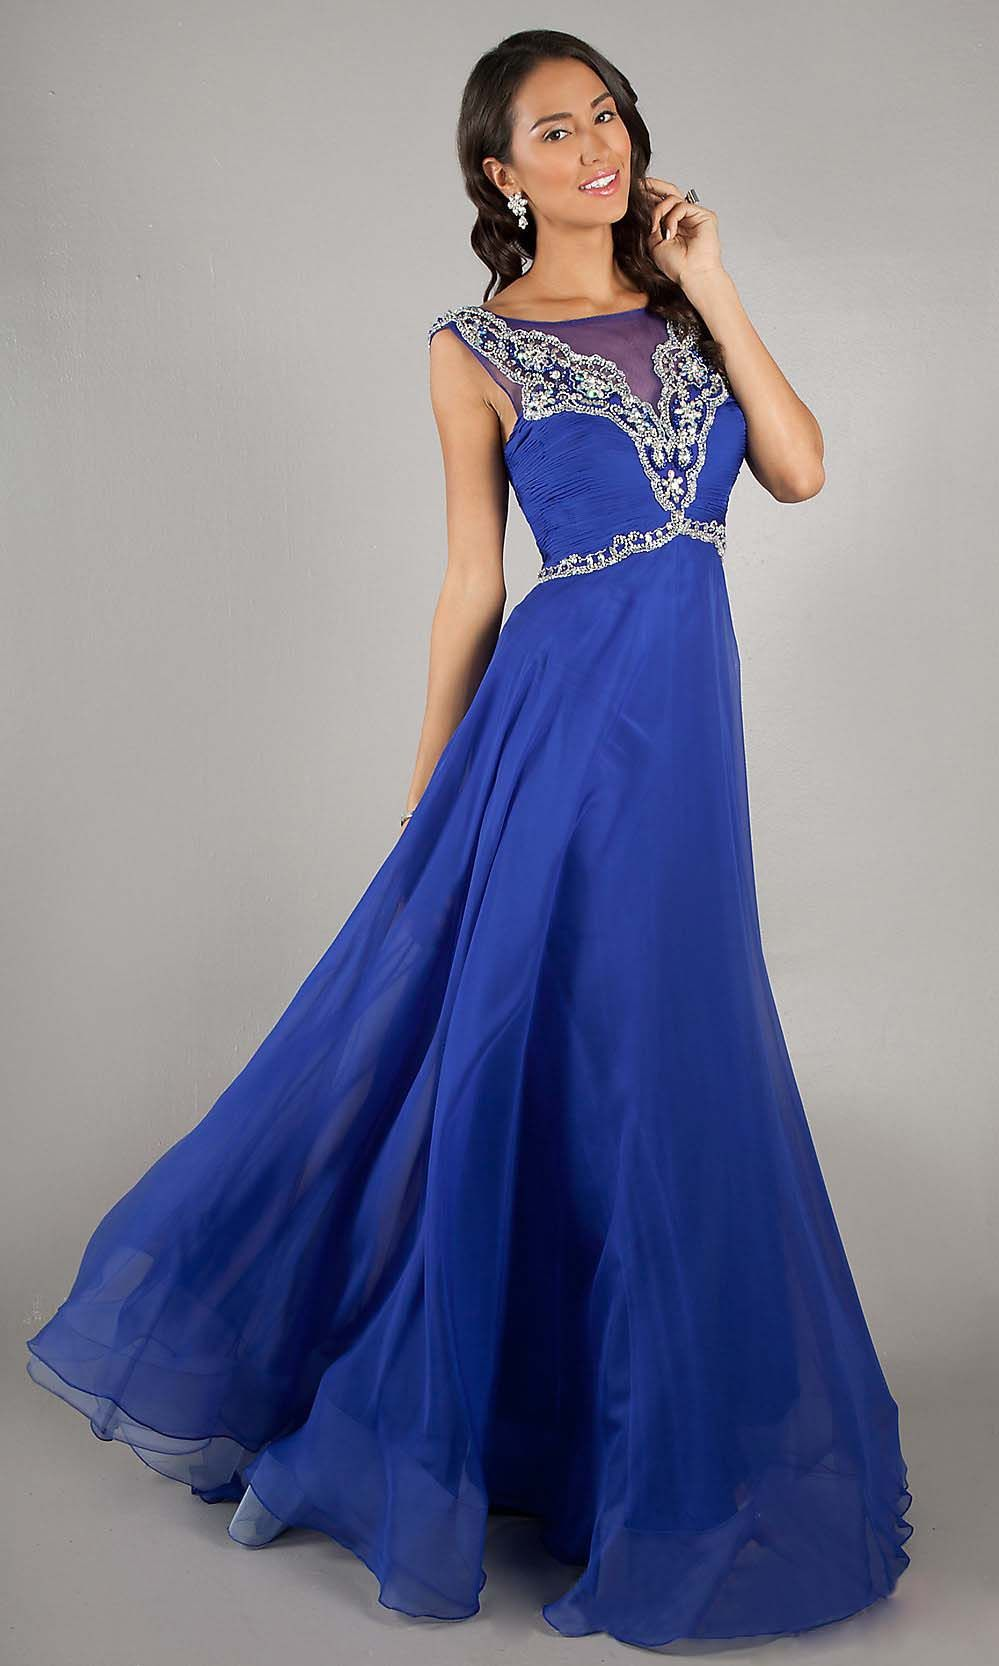 Royal blue prom dress | Dresses | Pinterest | Blue bridesmaid ...